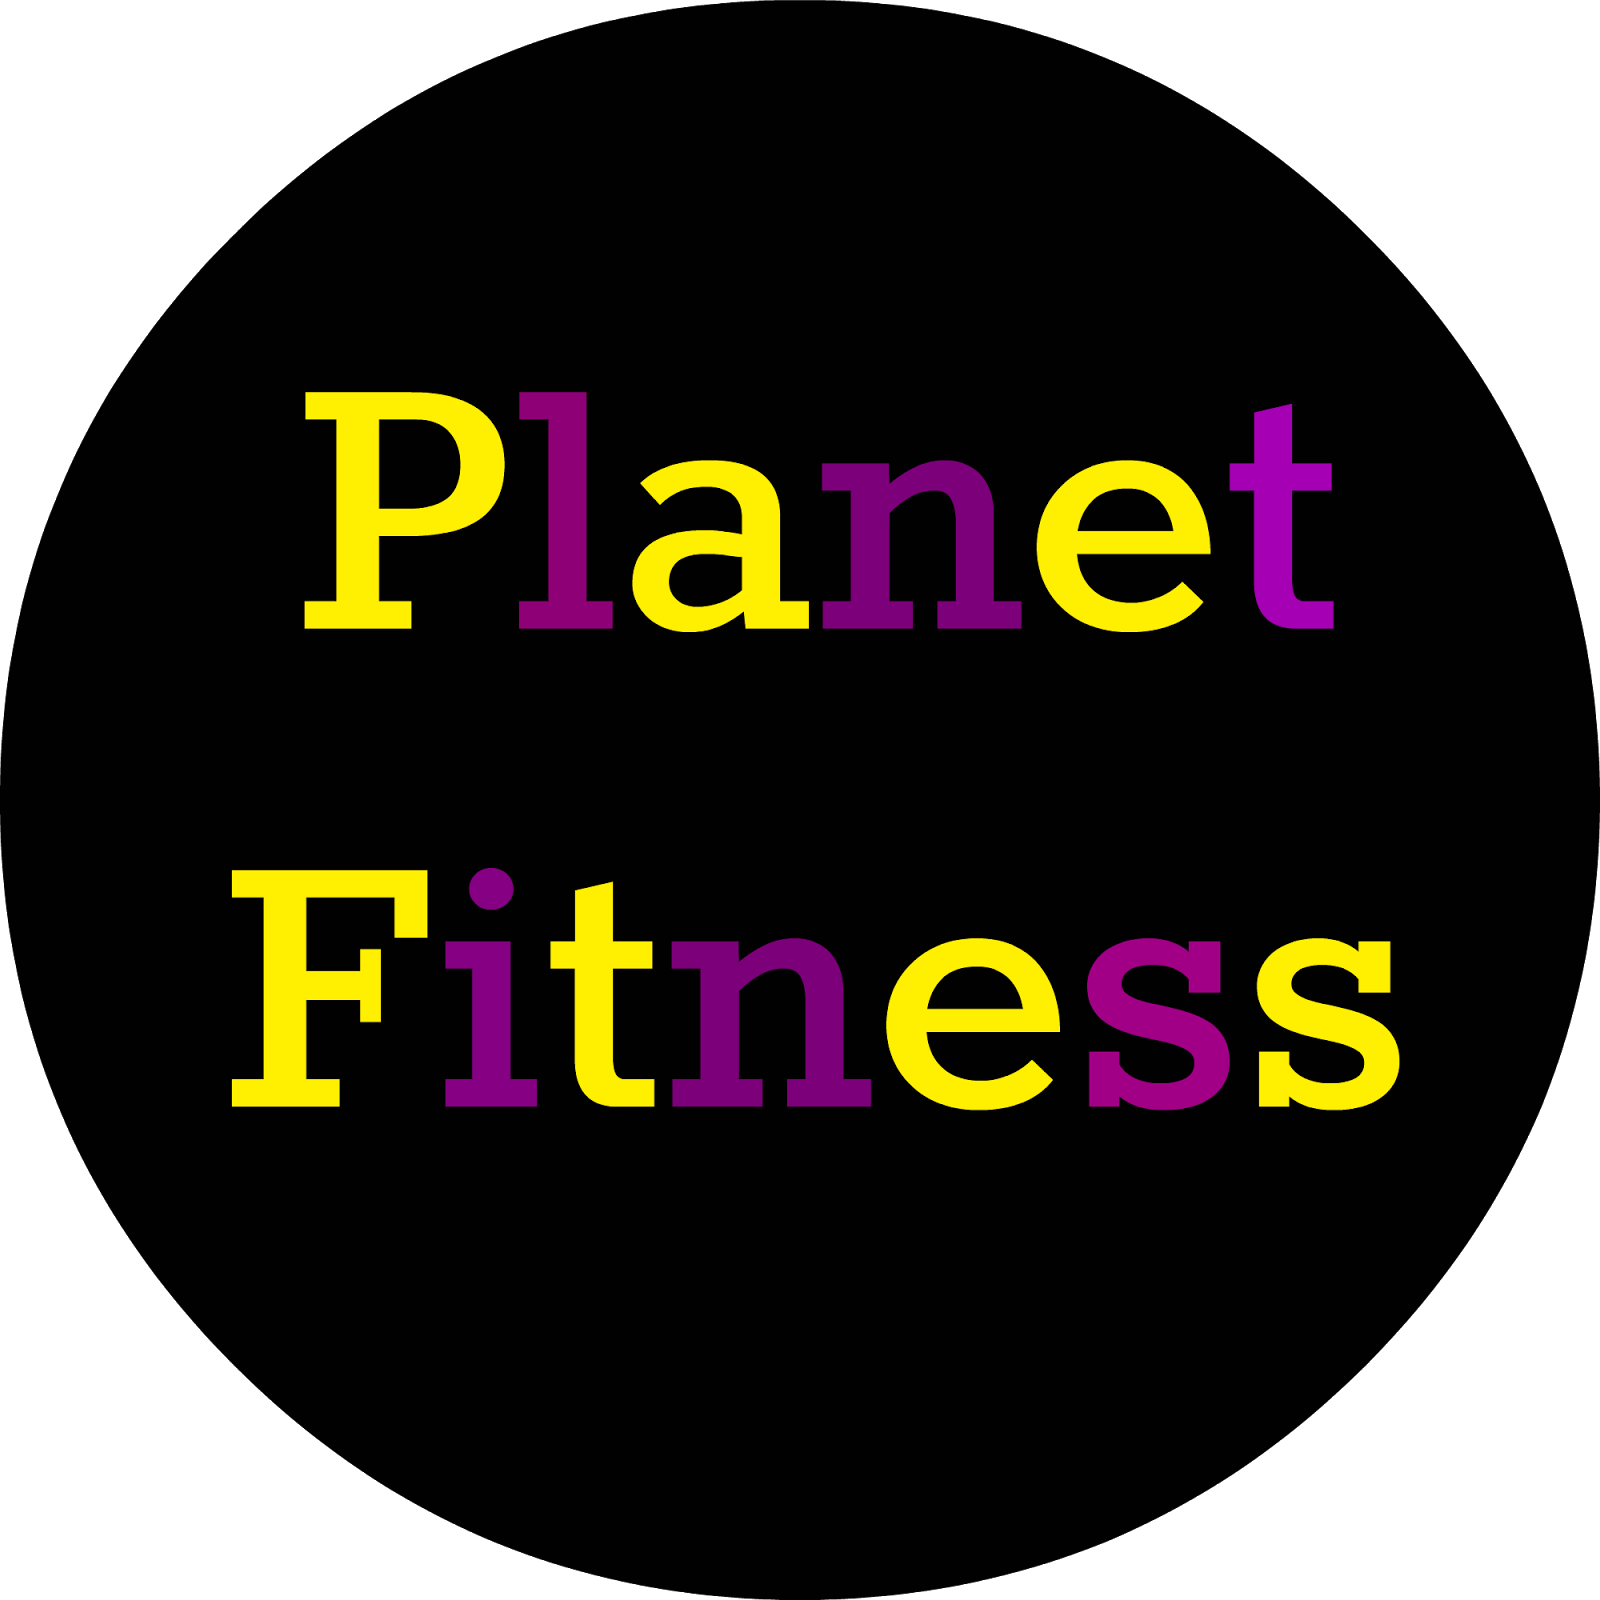 Planet fitness png. Meg go run two